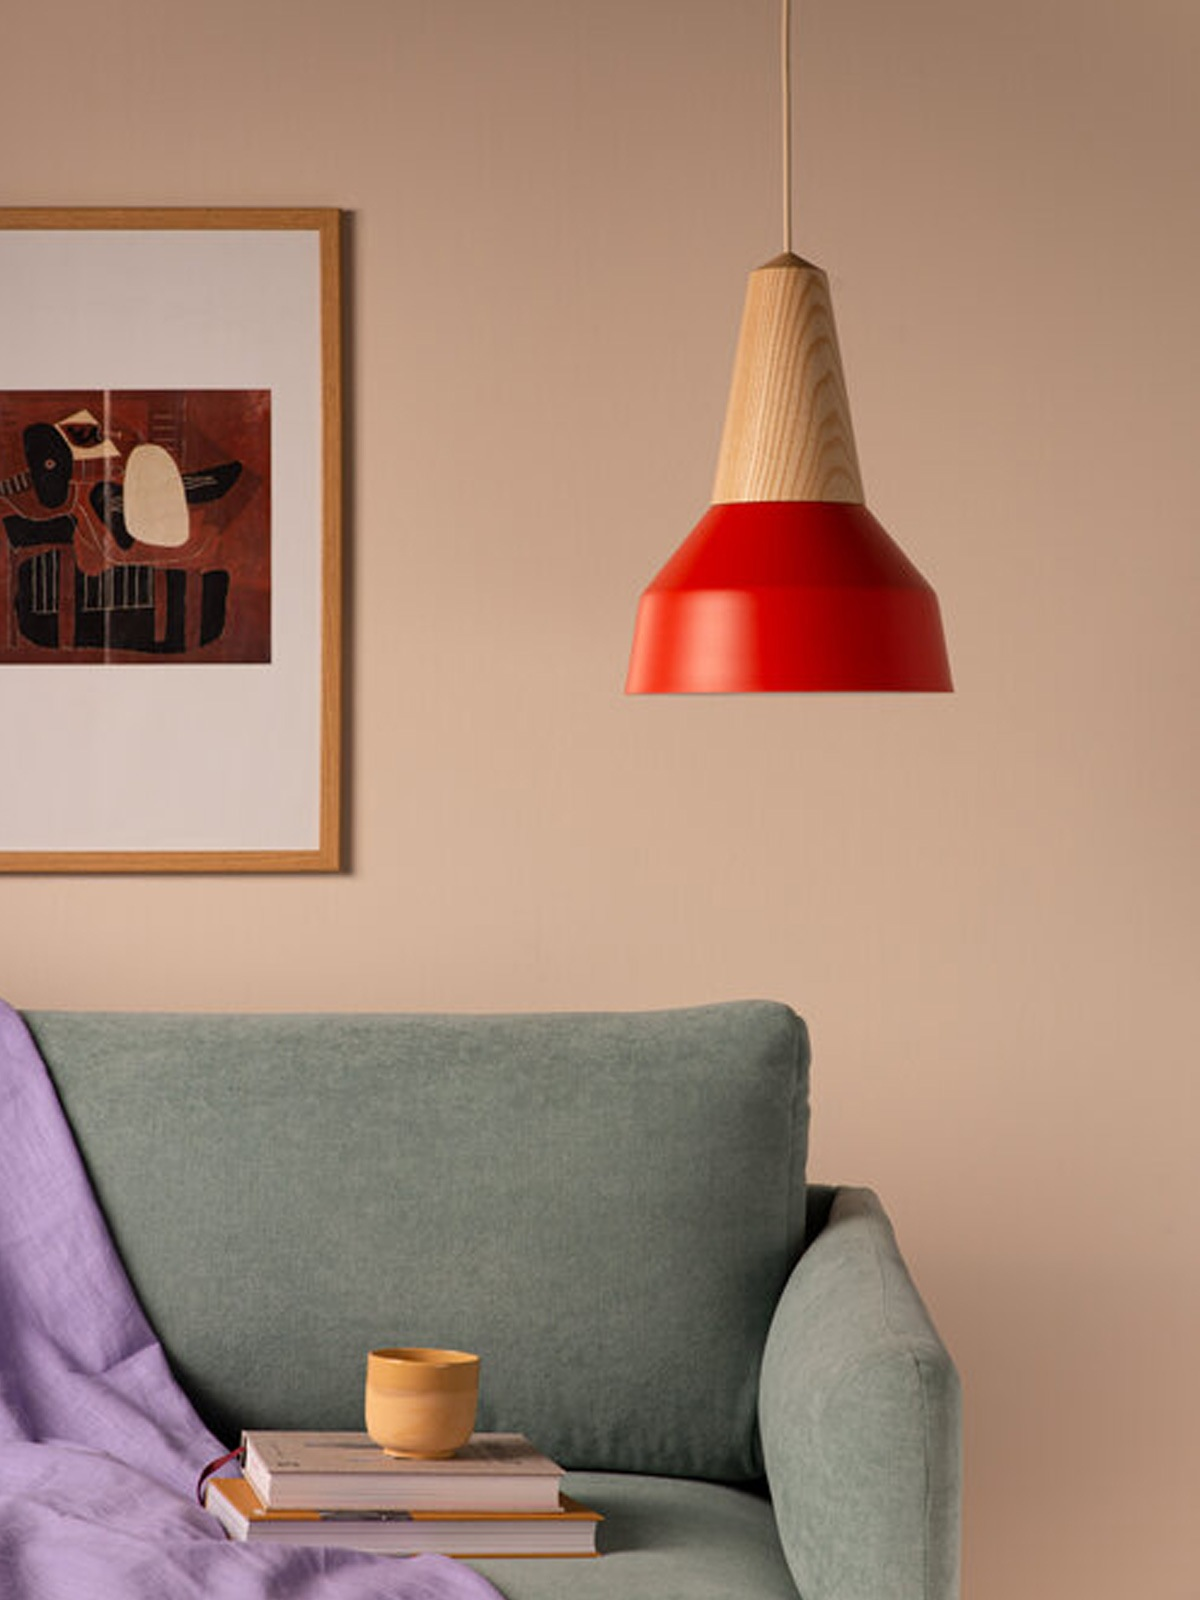 Schneid Eikon Basic Poppy Red Leuchte DesignOrt Onlineshop Lampen Berlin